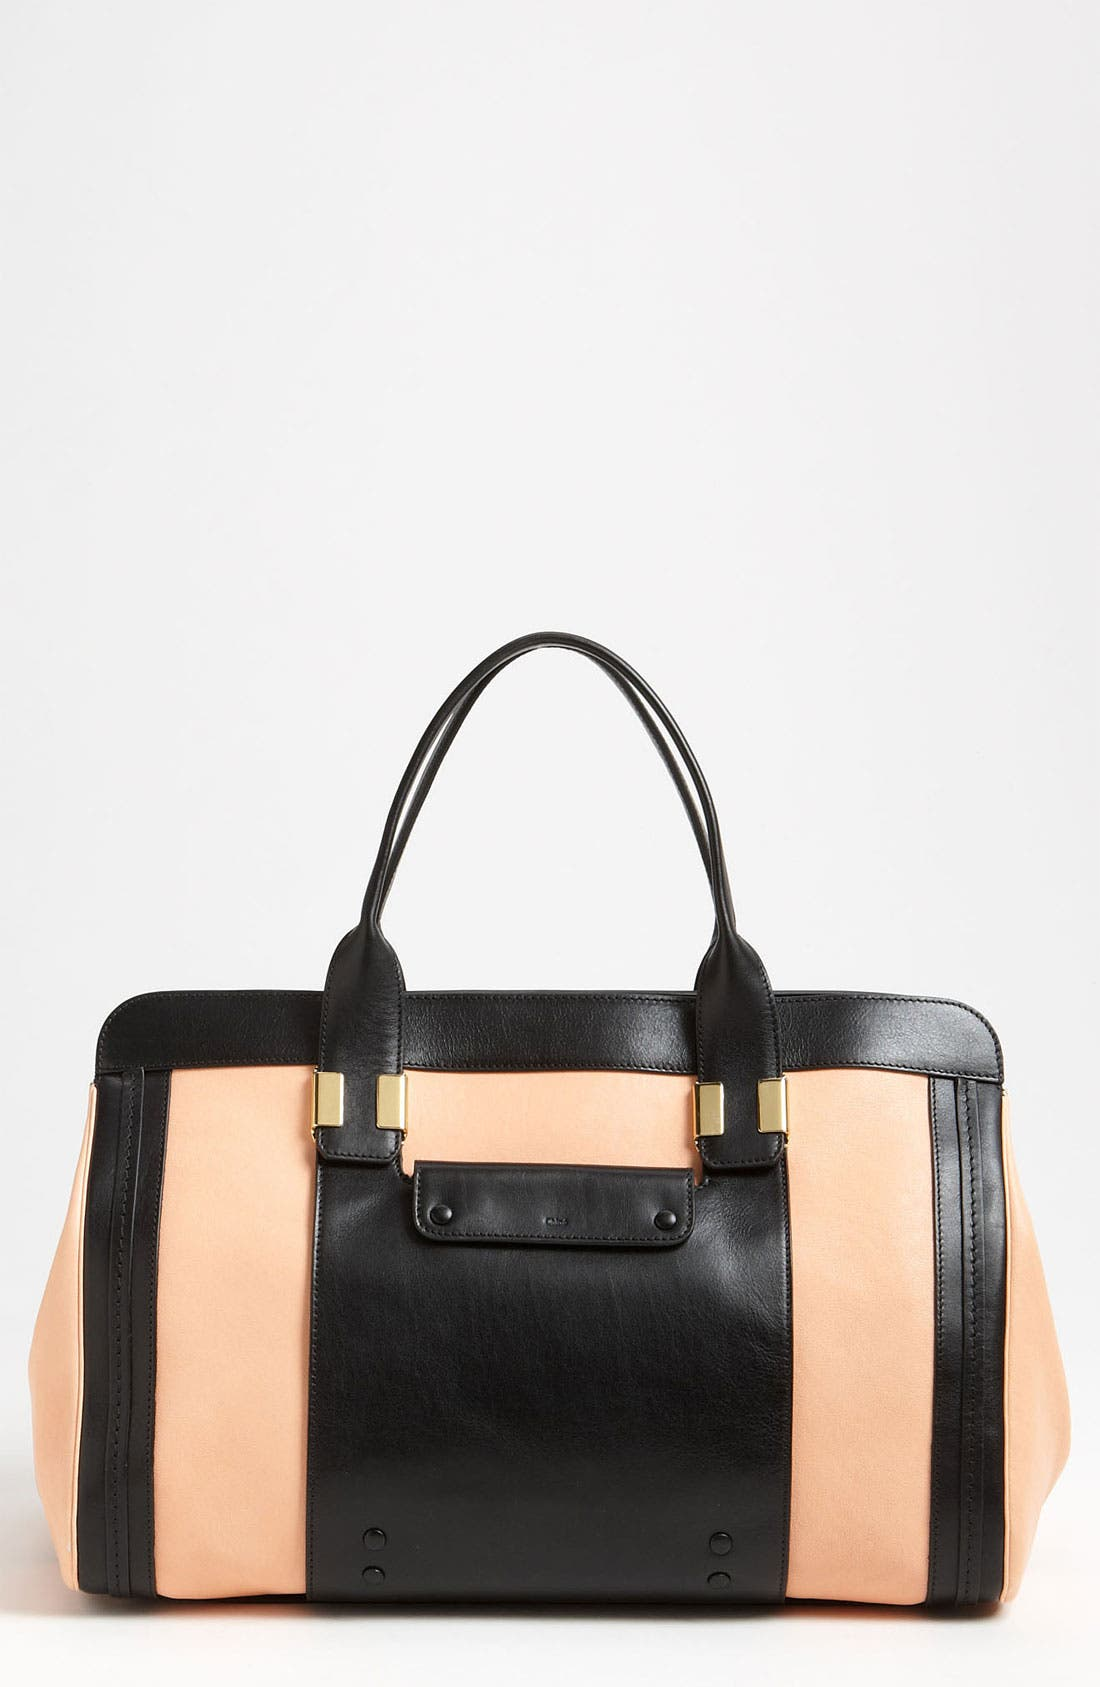 Alternate Image 1 Selected - Chloé 'Alice - Large' Leather Tote